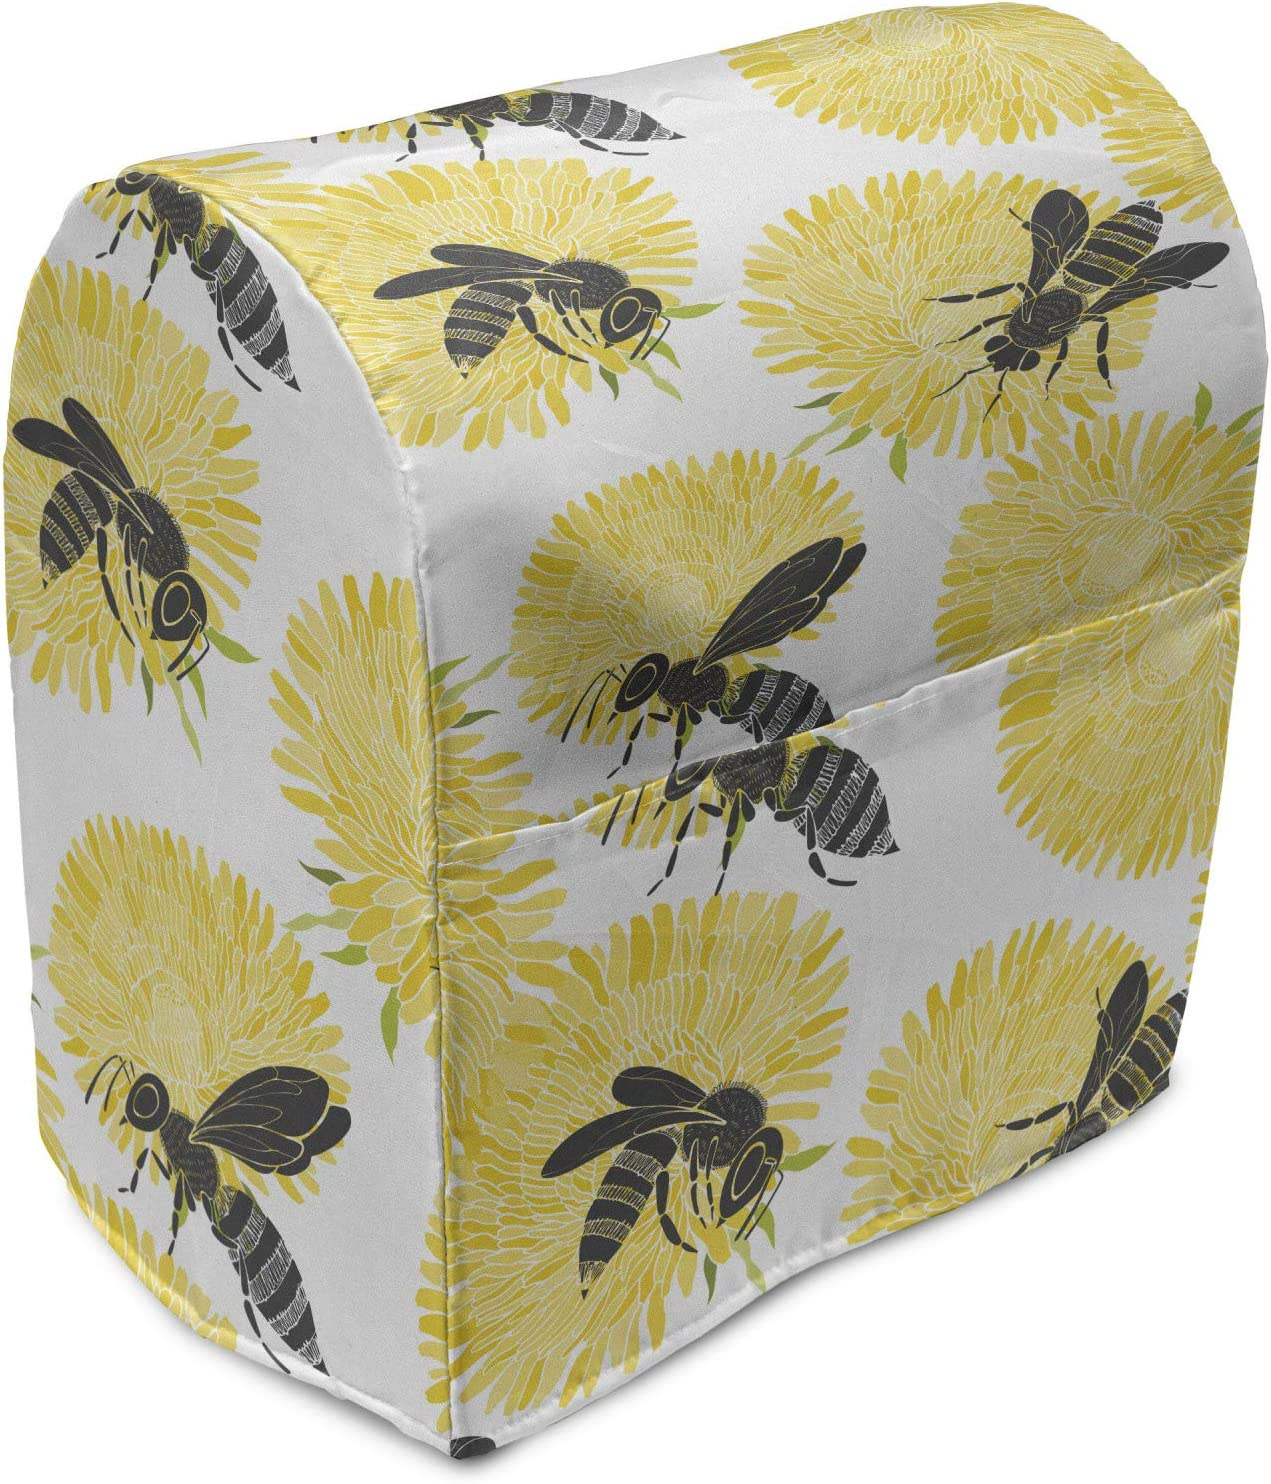 Lunarable Seattle Mall Dandelion Stand Mixer Cover Bees on Max 54% OFF Spring Wildflower